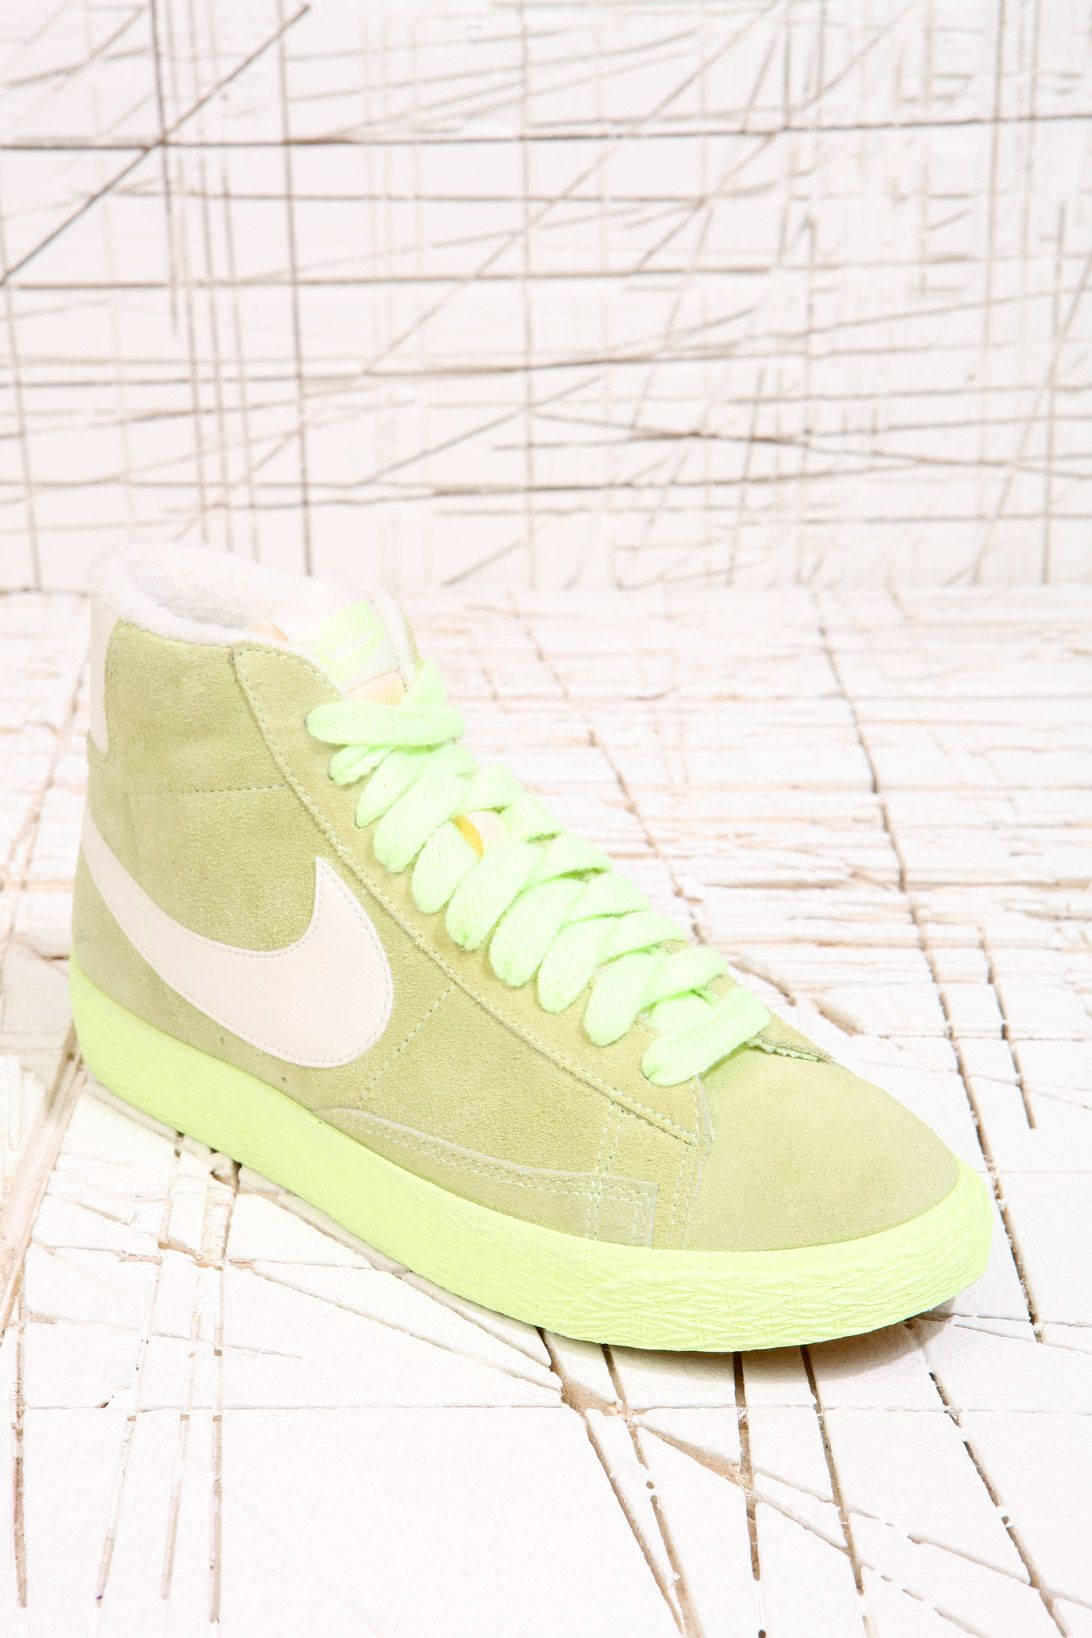 Nike Blazer Green Mid Suede Trainers at Urban Outfitters